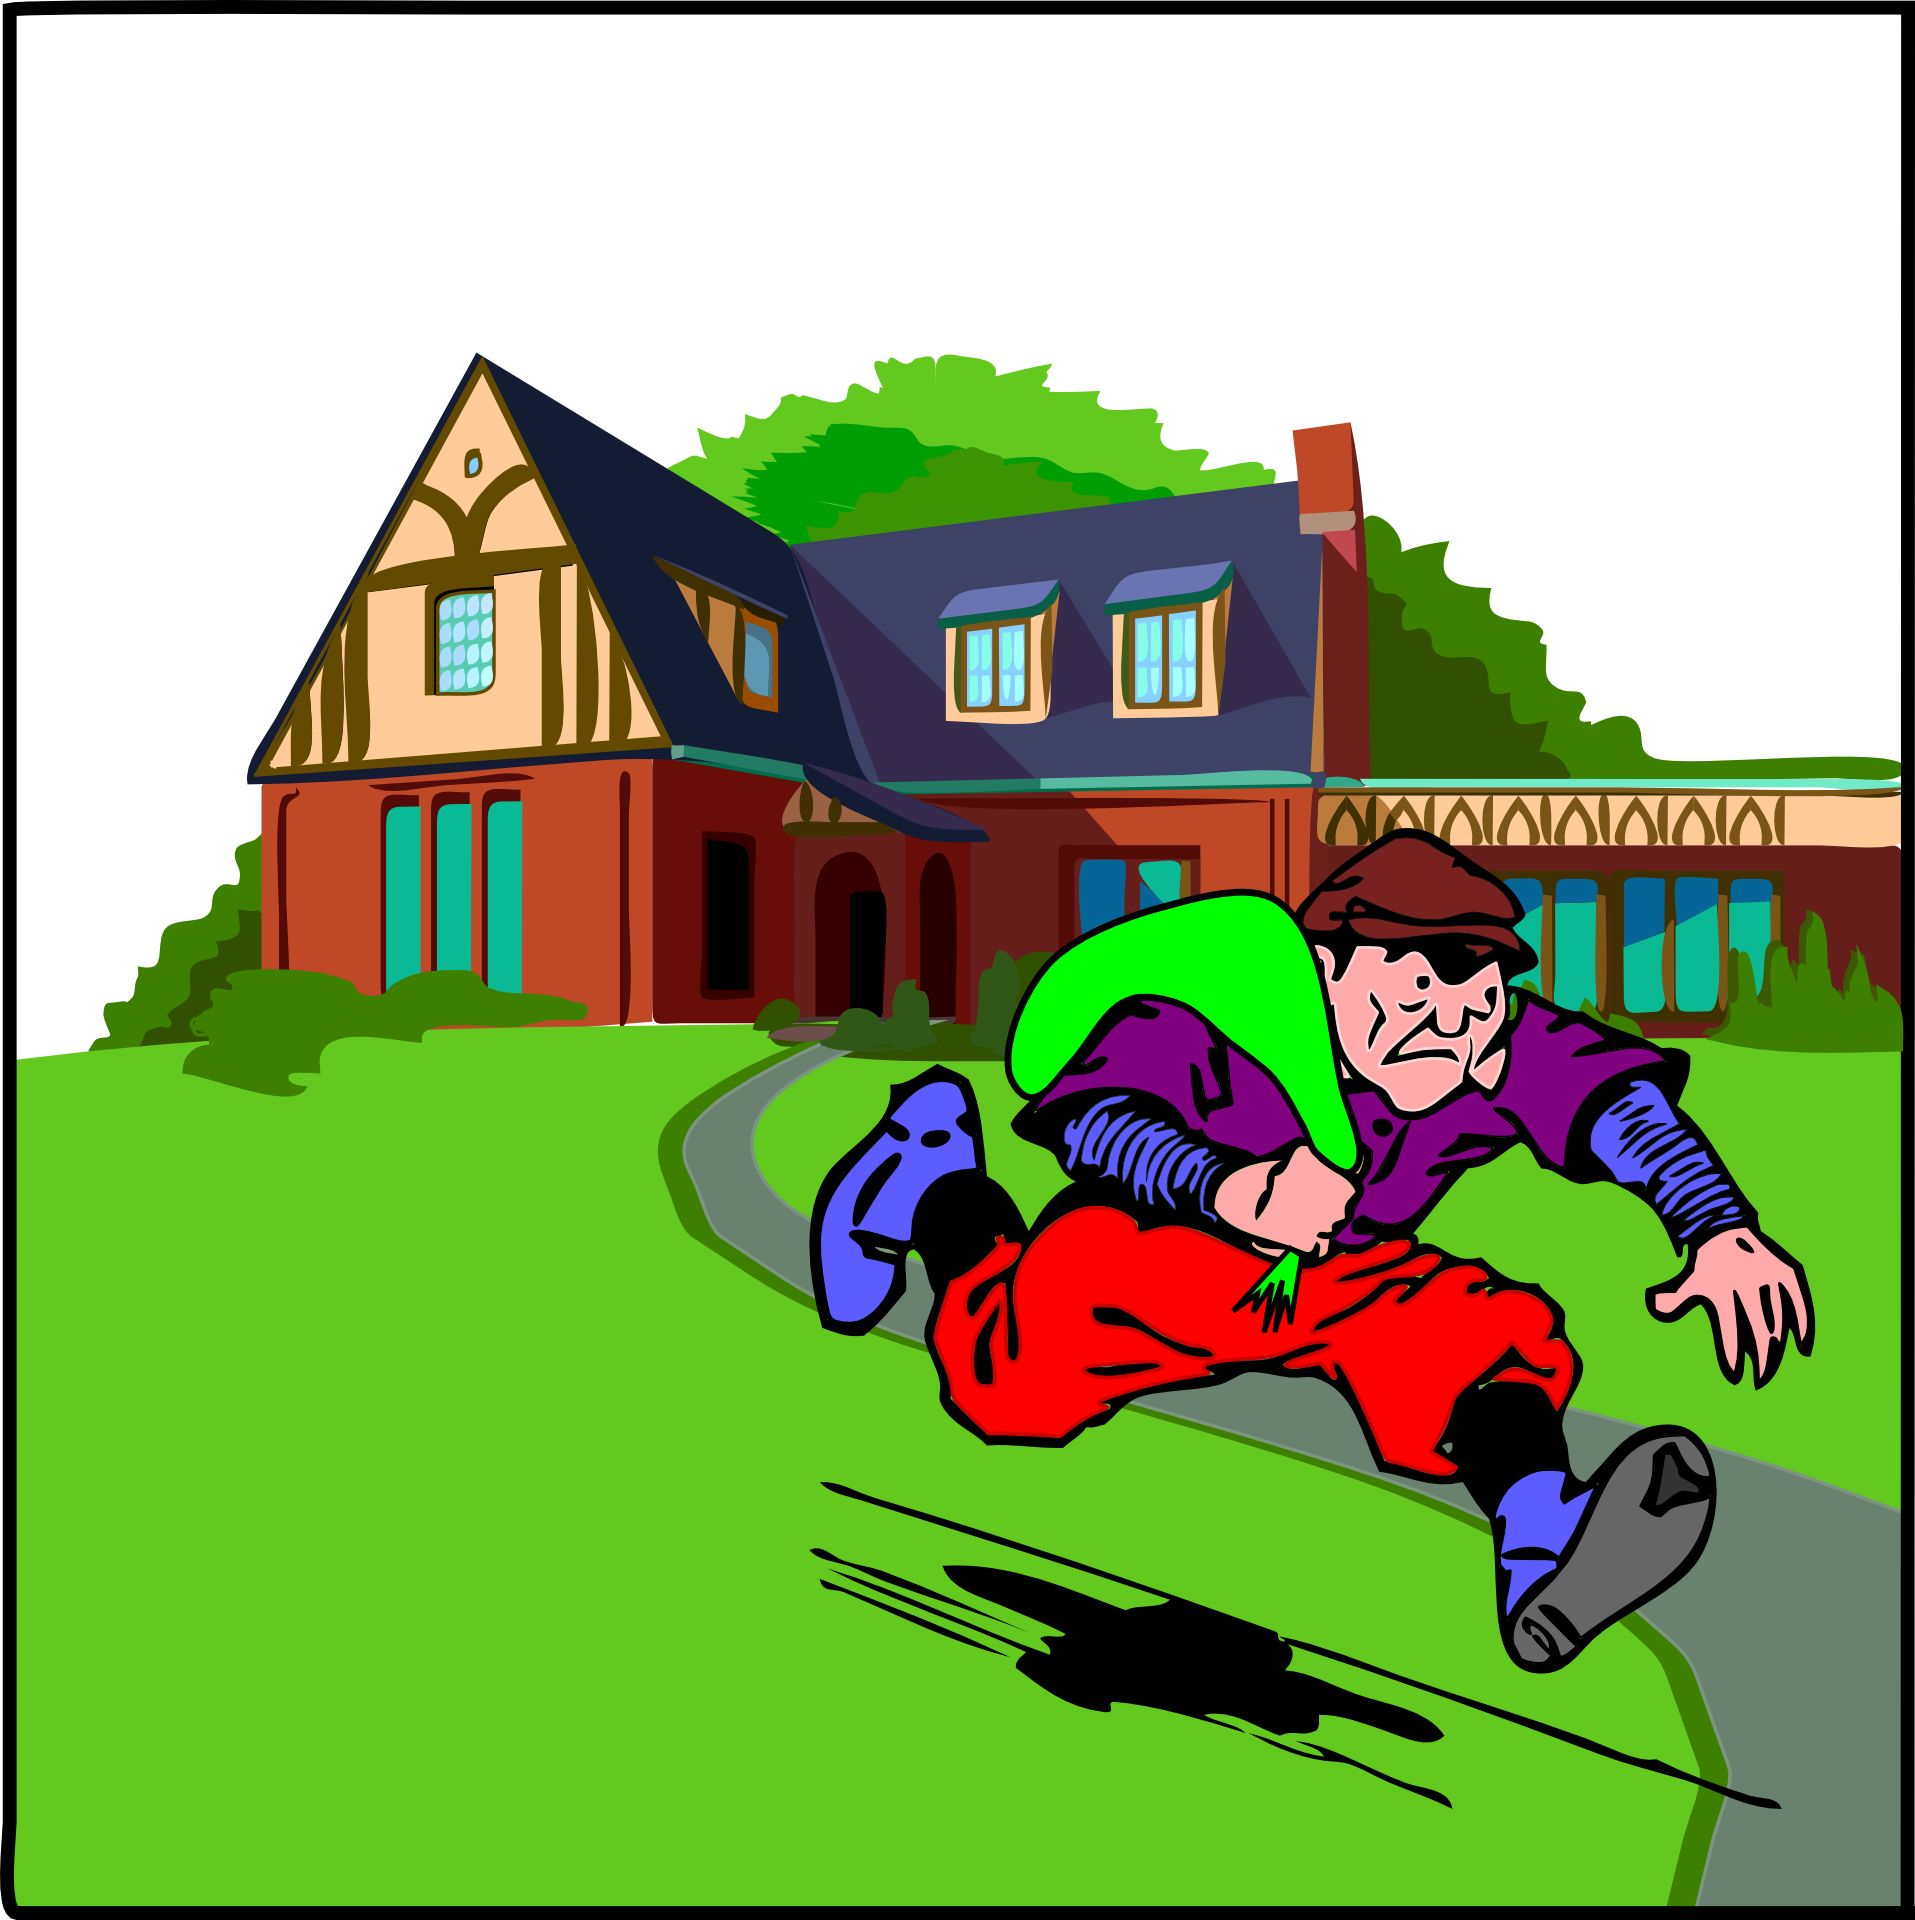 Robbed clipart vector library stock Thief robbed big house and running away clipart free image vector library stock